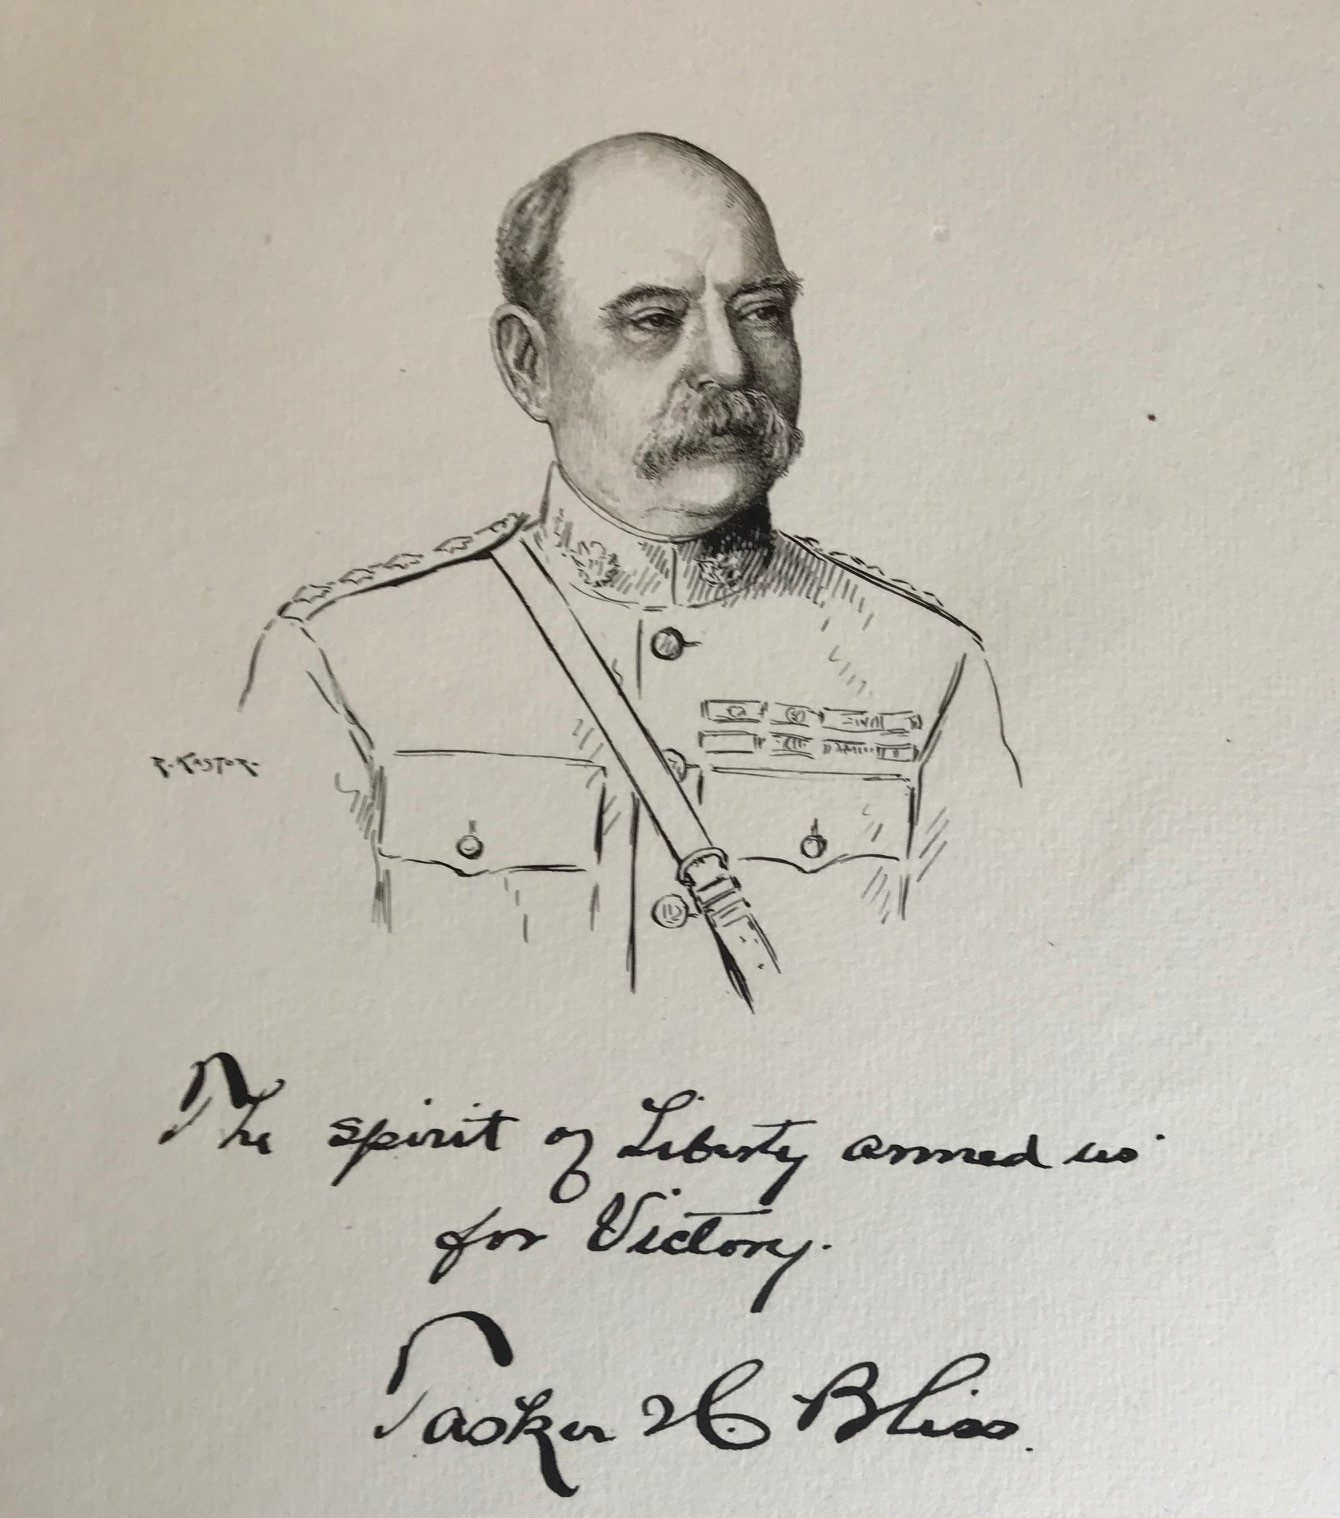 Original Signed Drawing with a Quotation from the U.S. Army's WWI Chief of Staff